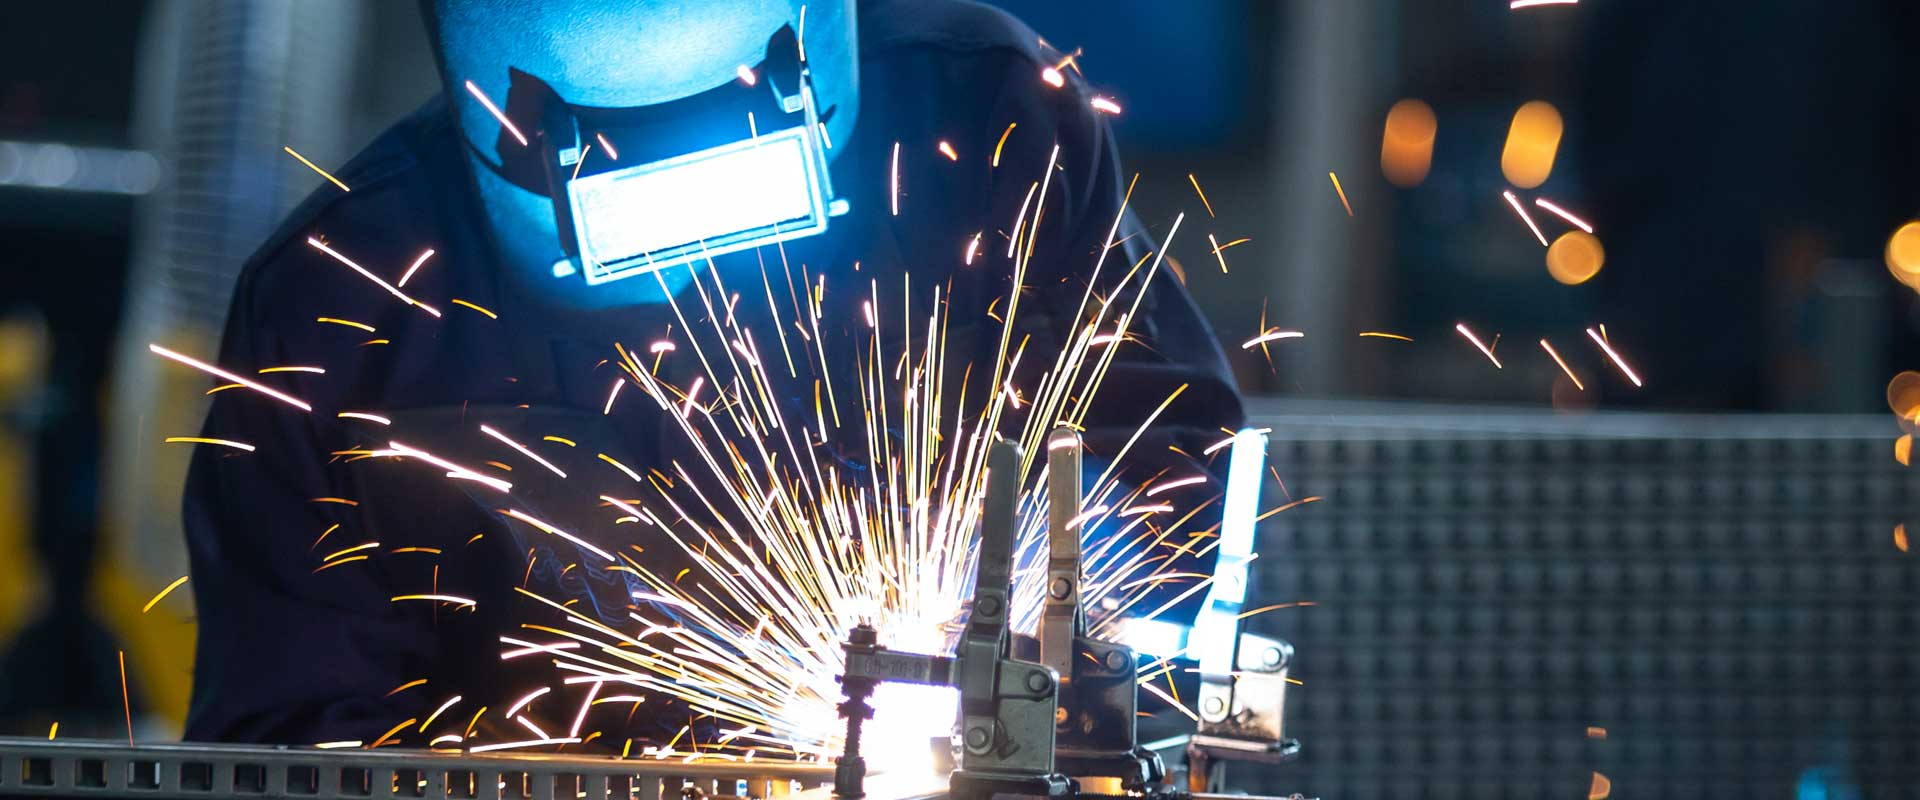 Call Welding Innovations in Jefferson, IA for your fabrication services